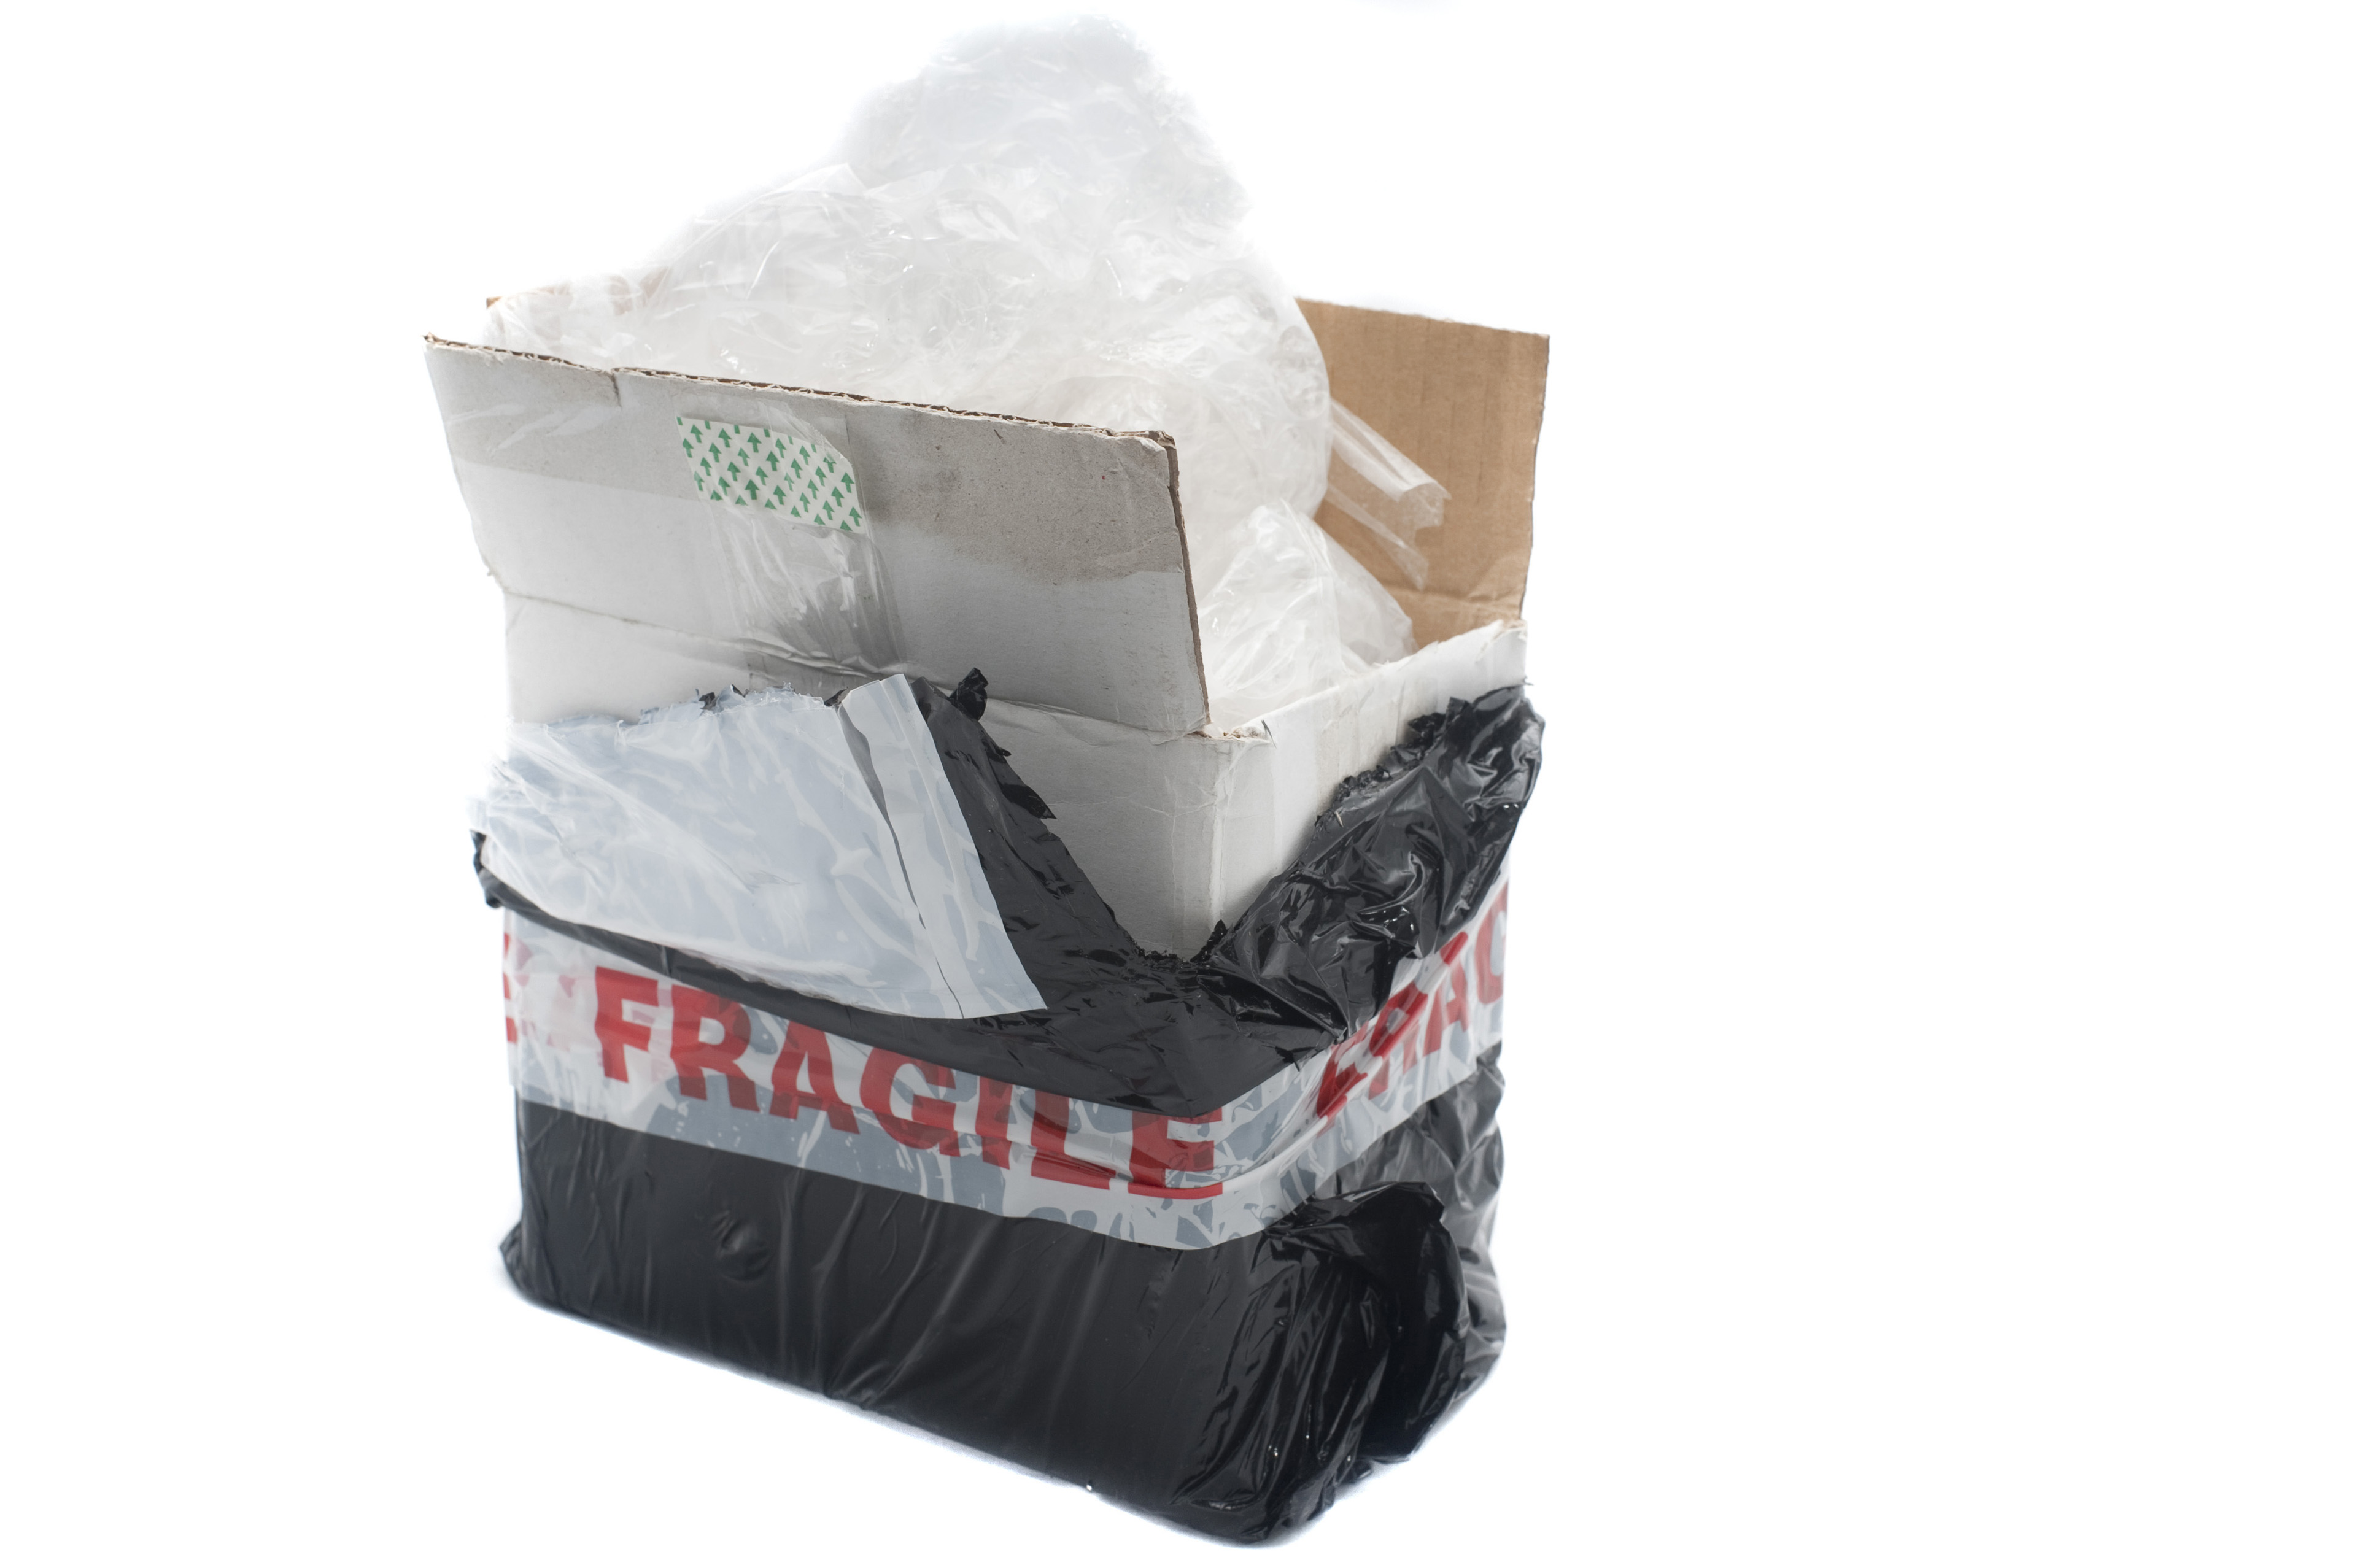 Opened cardboard box postal or courier package with fragile sticker and interior packaging isolated on white